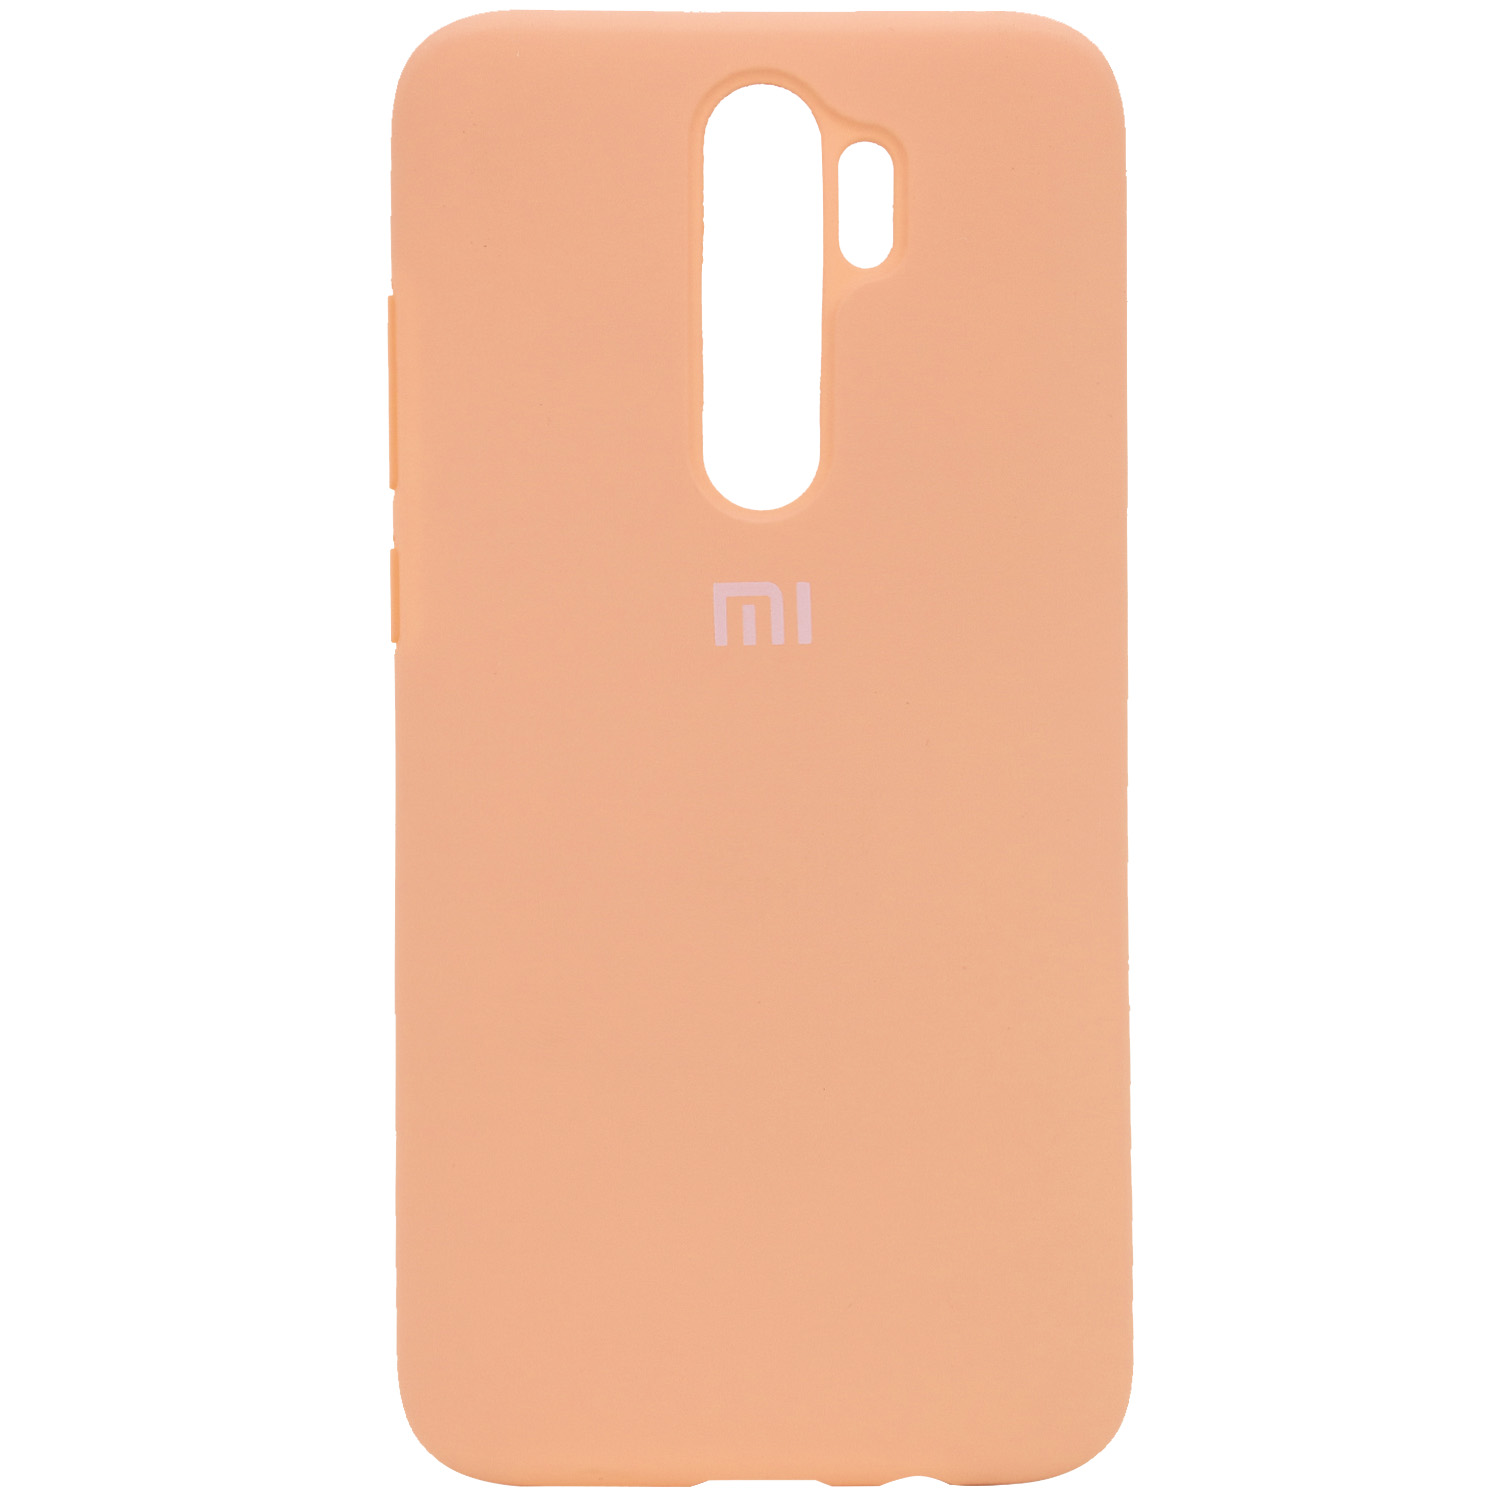 Чехол Silicone Cover Full Protective (AA) для Xiaomi Redmi Note 8 Pro